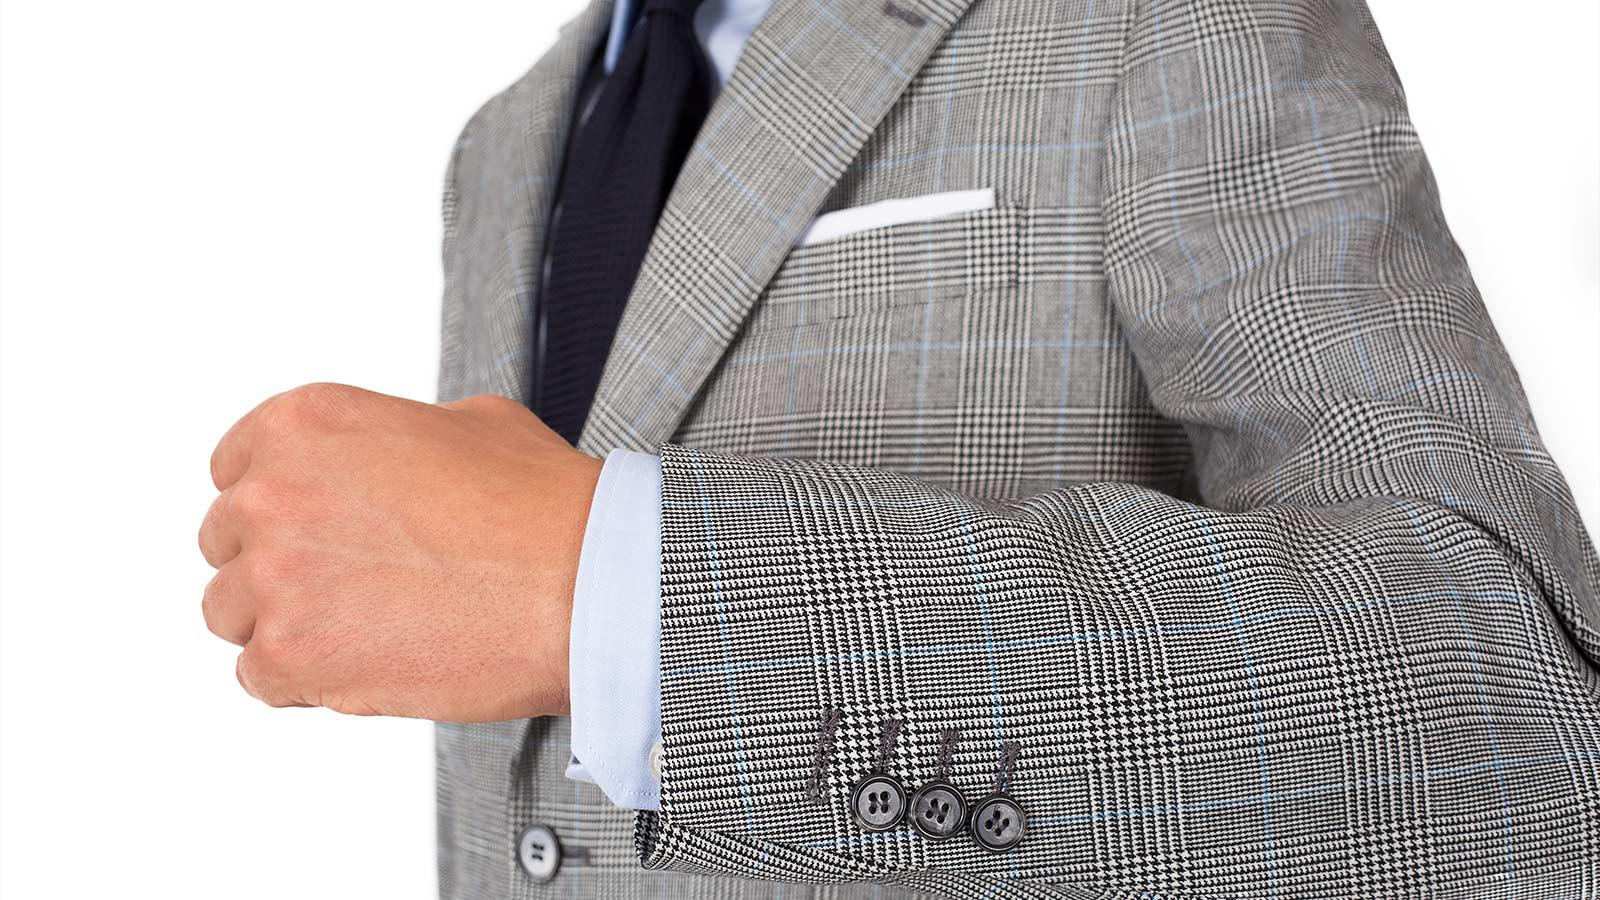 947dfedc4aab 100% SATISFACTION GUARANTEE Alterations are covered for 365 days - up to  $125 per suit at your local tailor! You can also return for a full refund  or ...